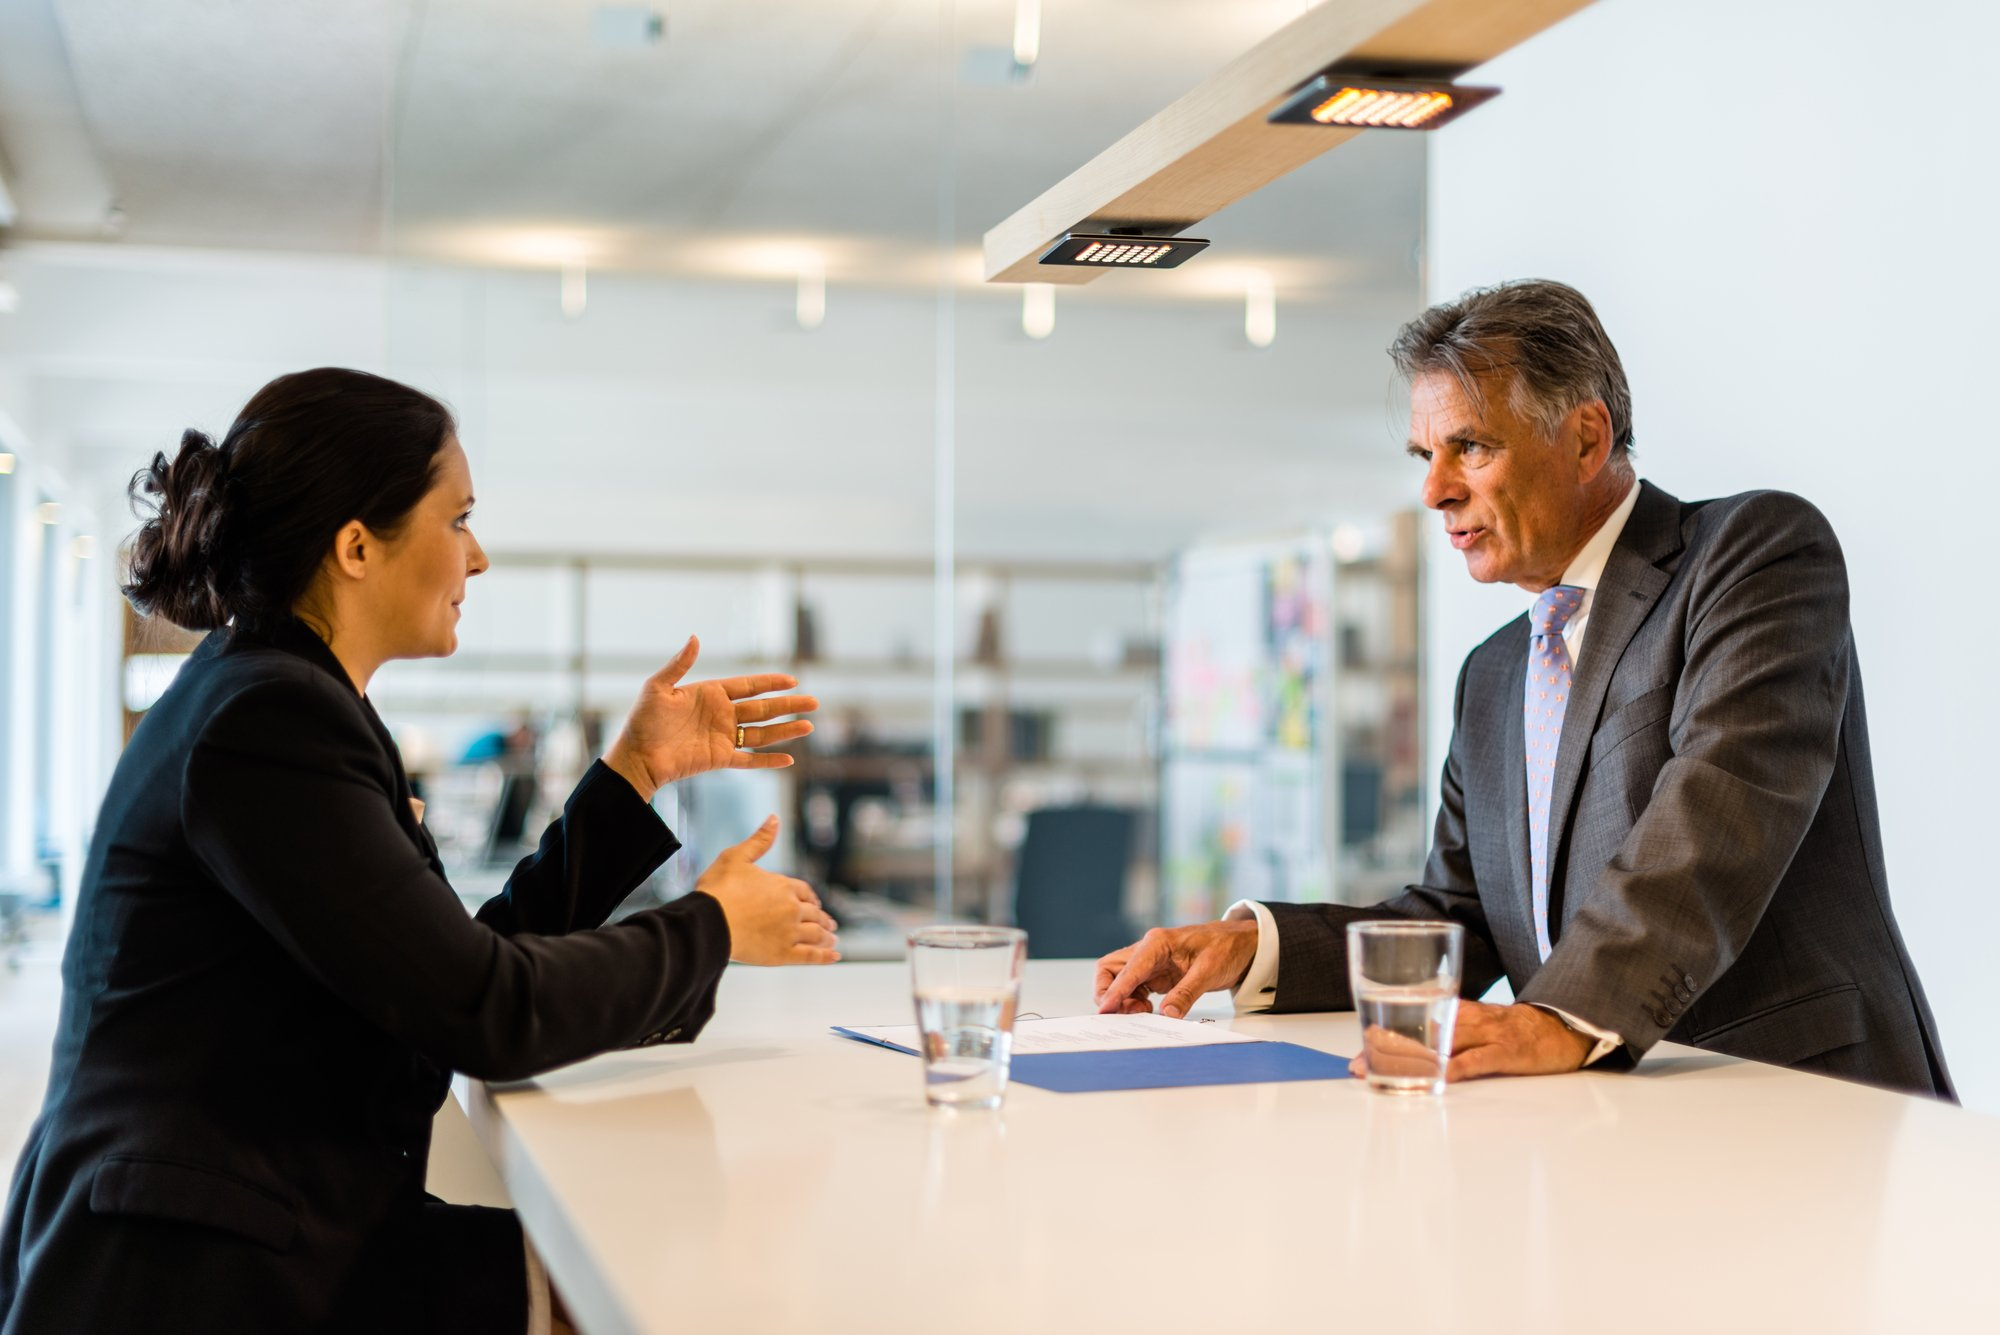 Resume Rules: Young interviewer interviewing an older man